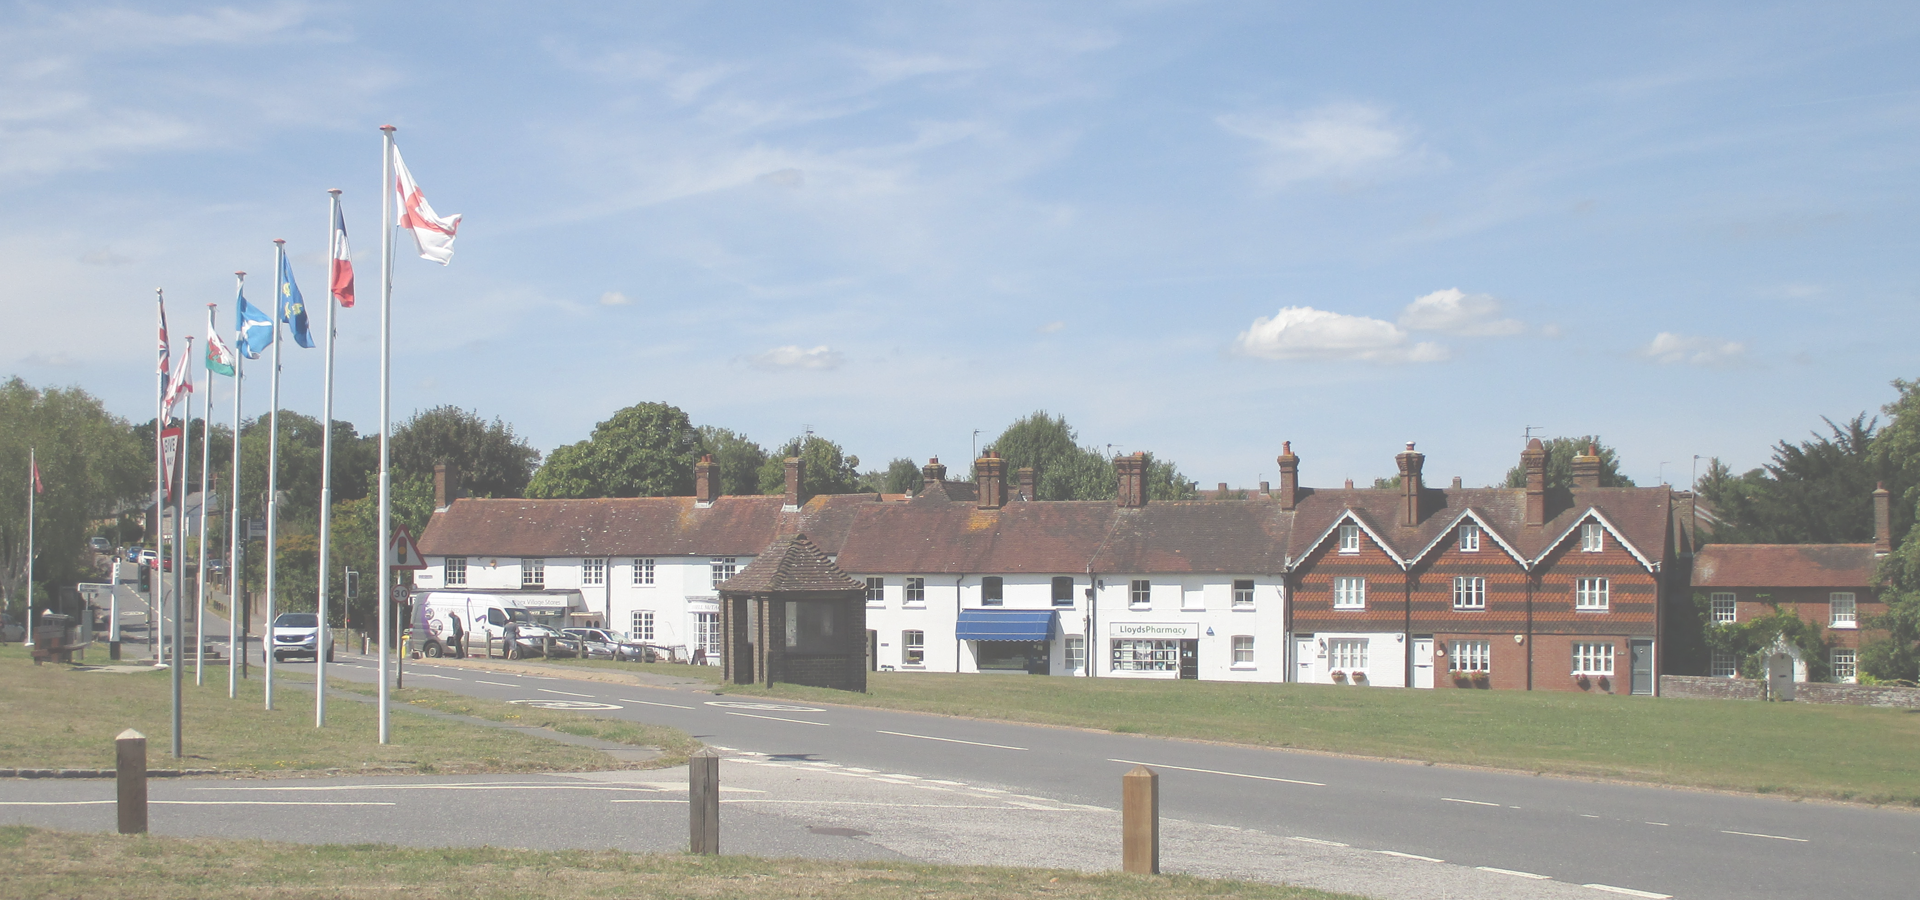 <b>Newick, East Sussex, England, Great Britain</b>